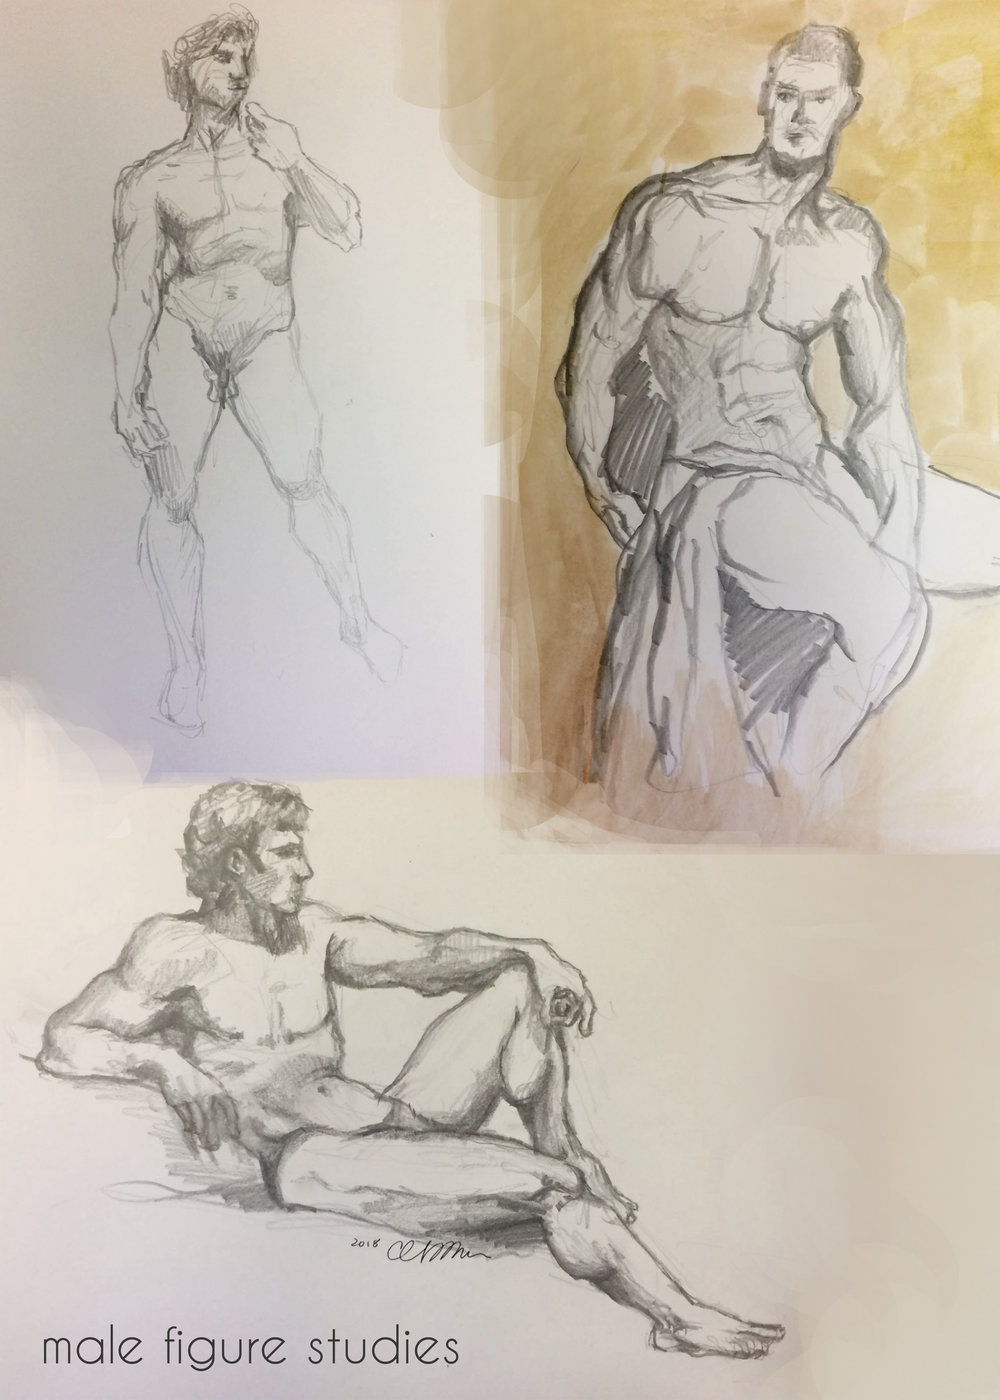 male fig studies.jpg